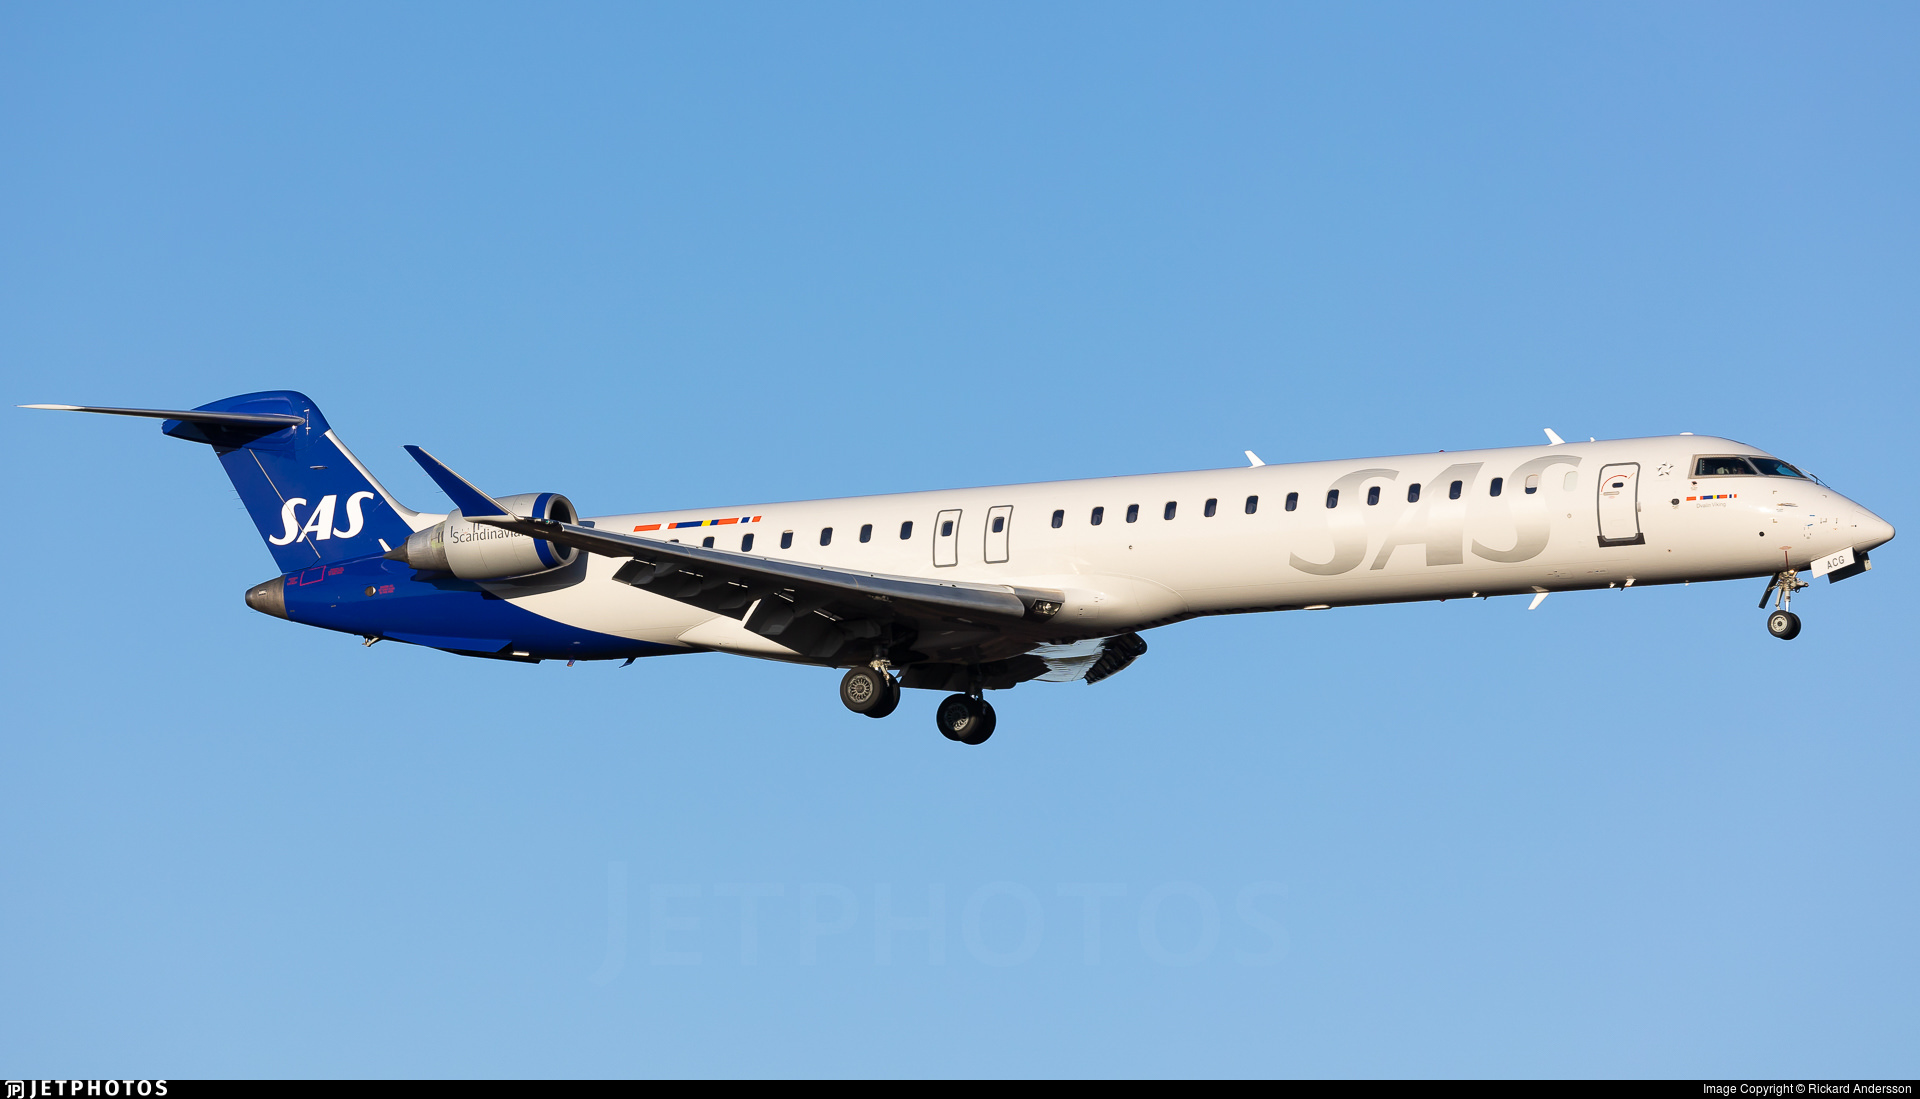 SAS CRJ-900 operated by Xfly